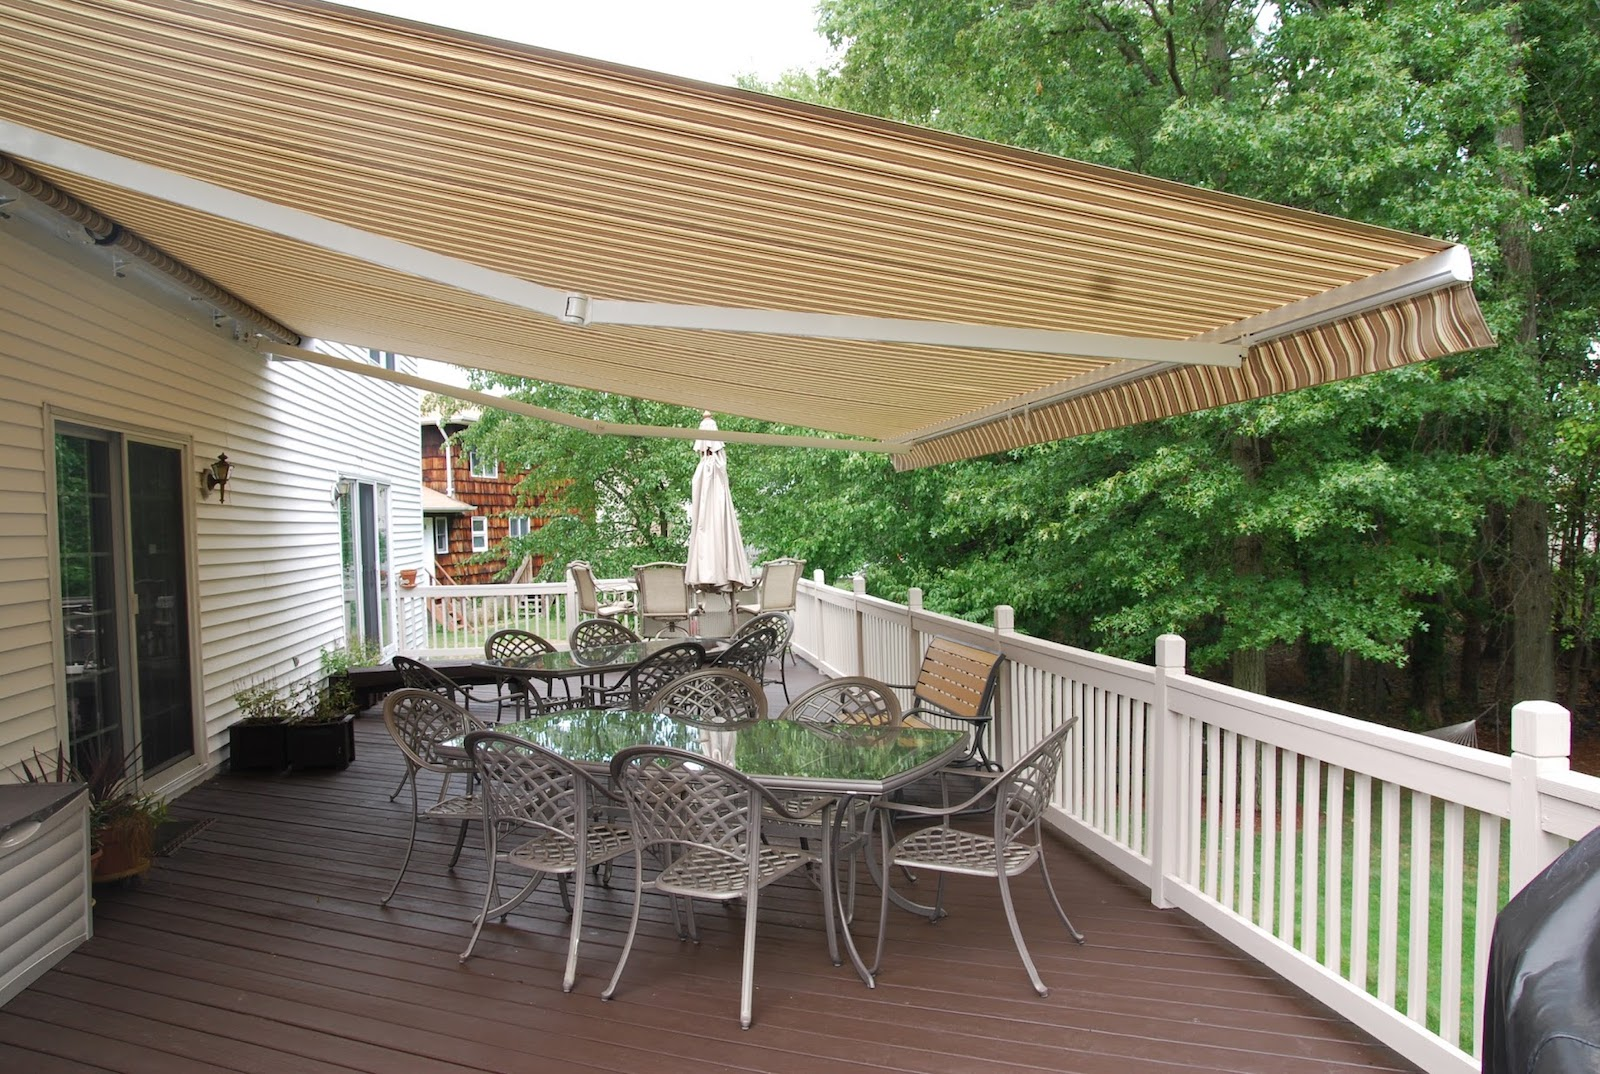 Eclipse Retractable Awning by Breslow Home Design Center in Chester NJ